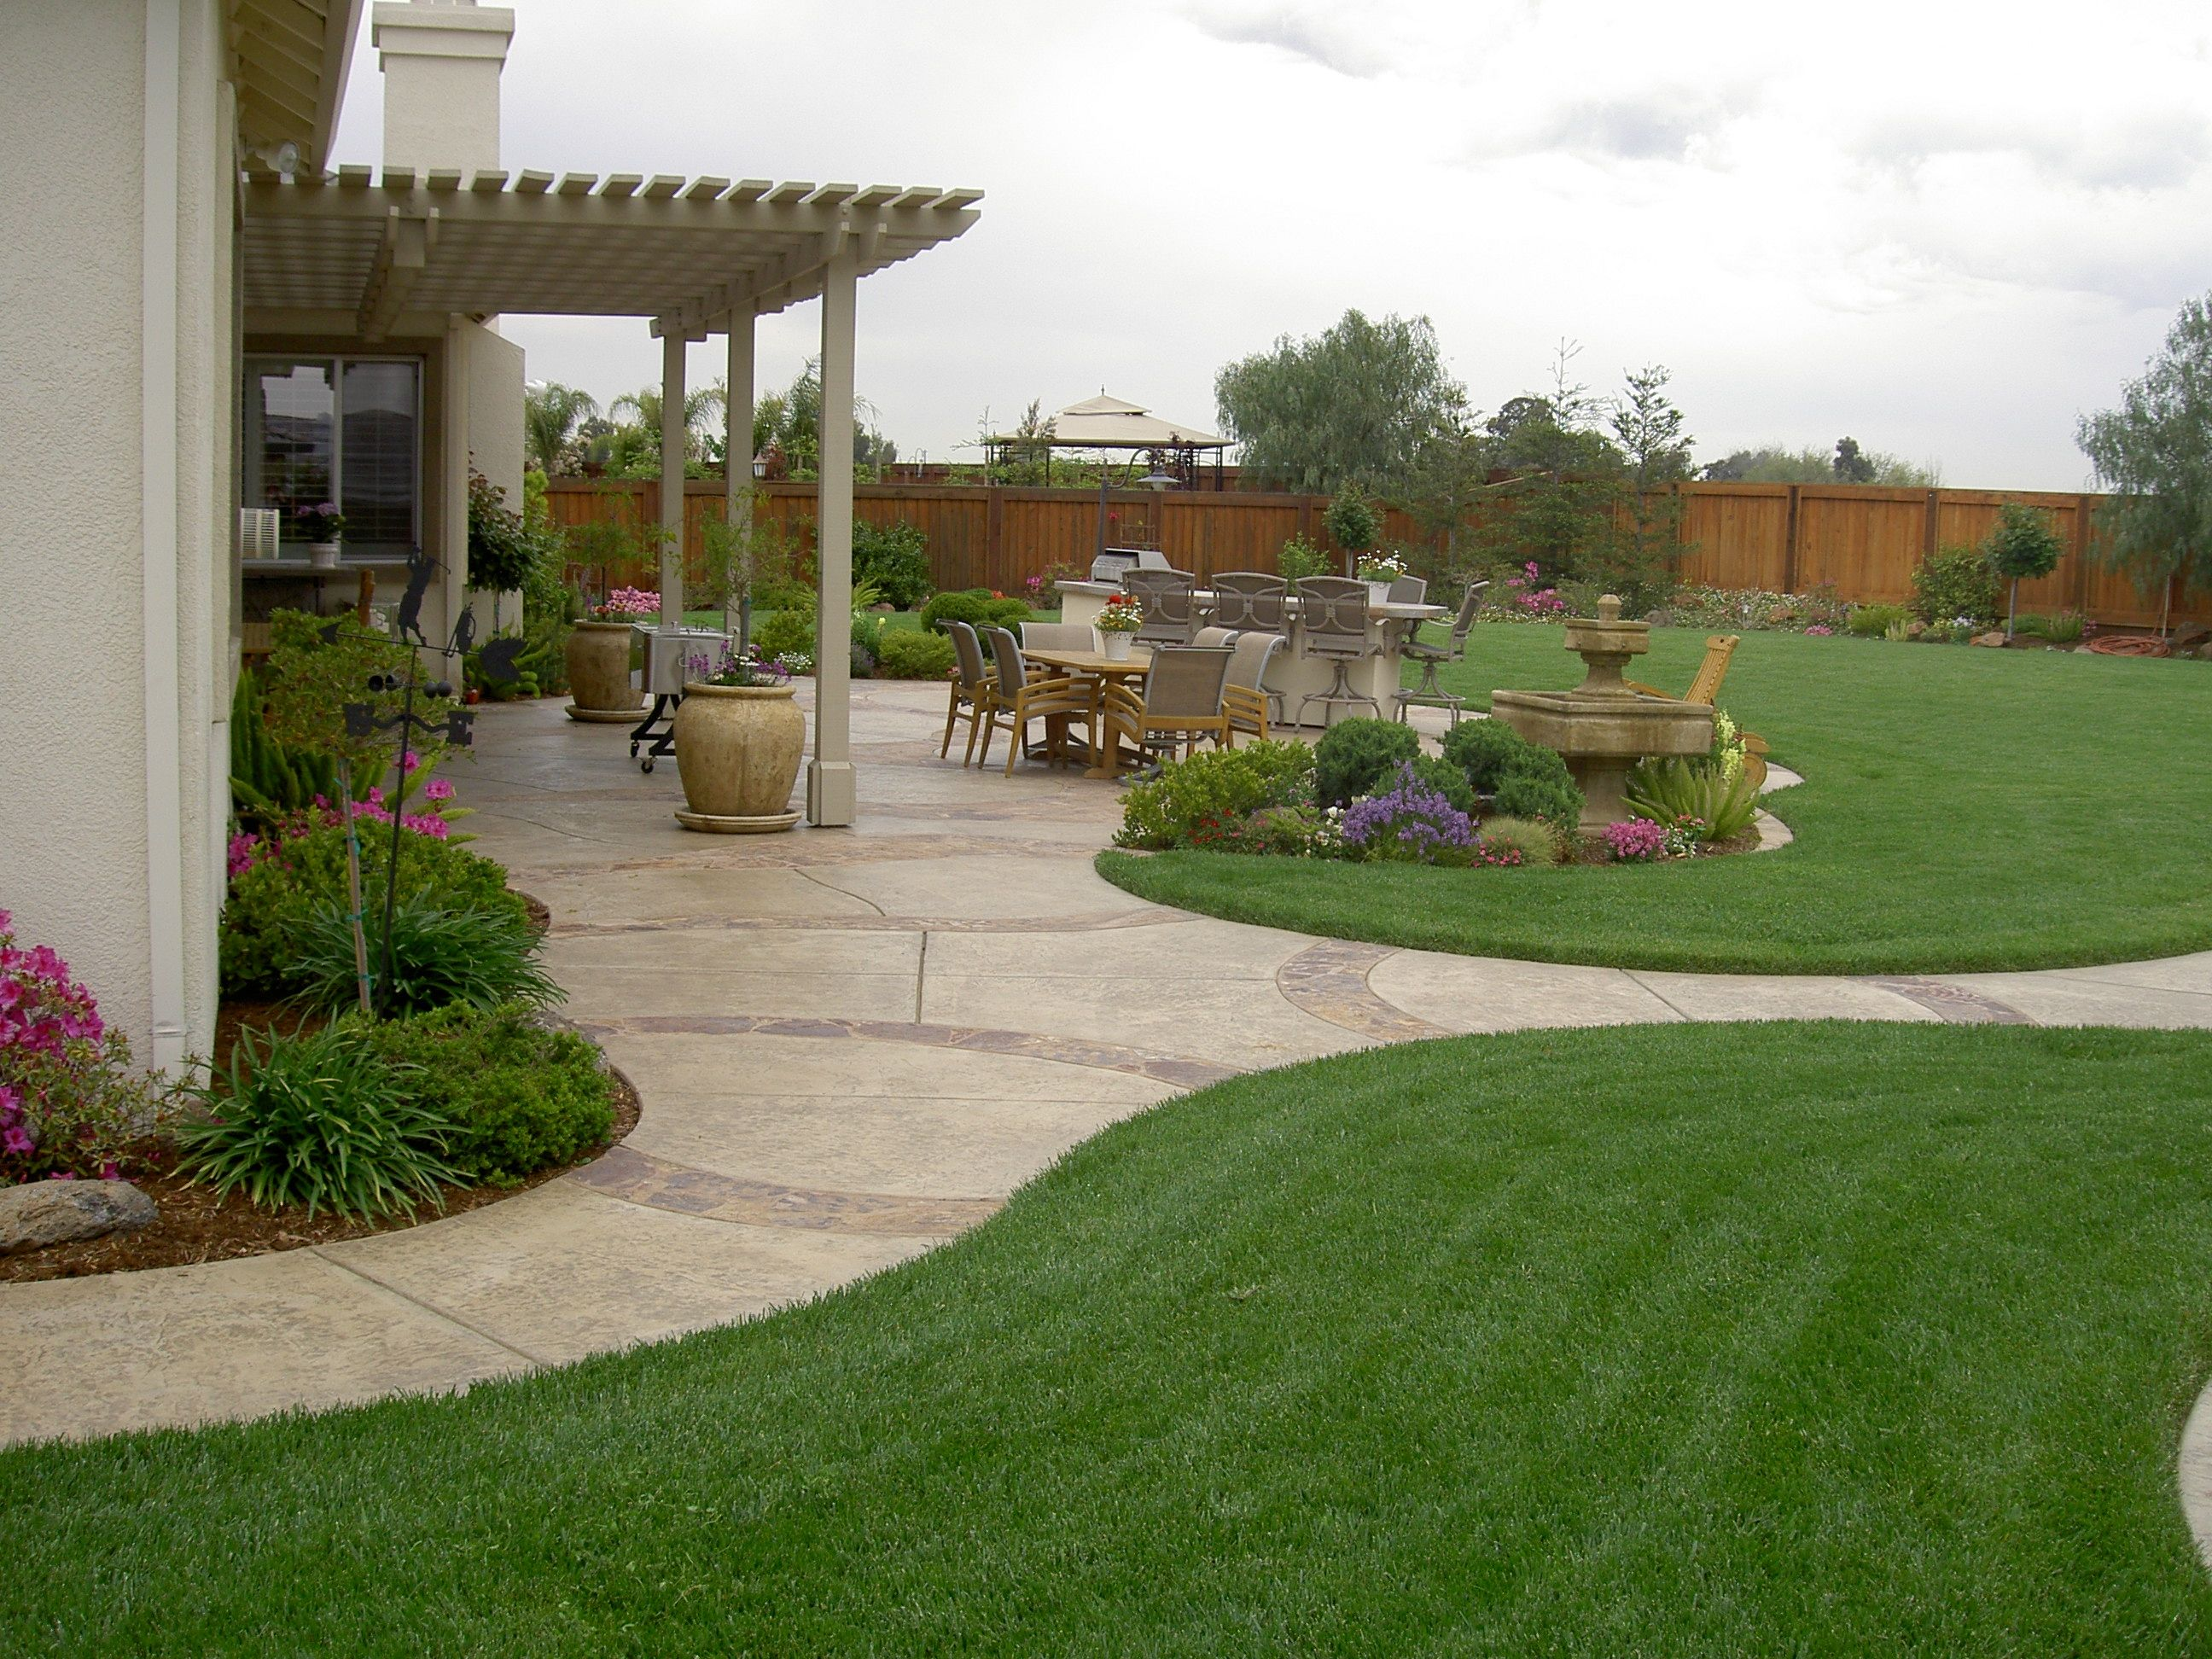 Landscaping Ideas For Backyard backyard ideas More